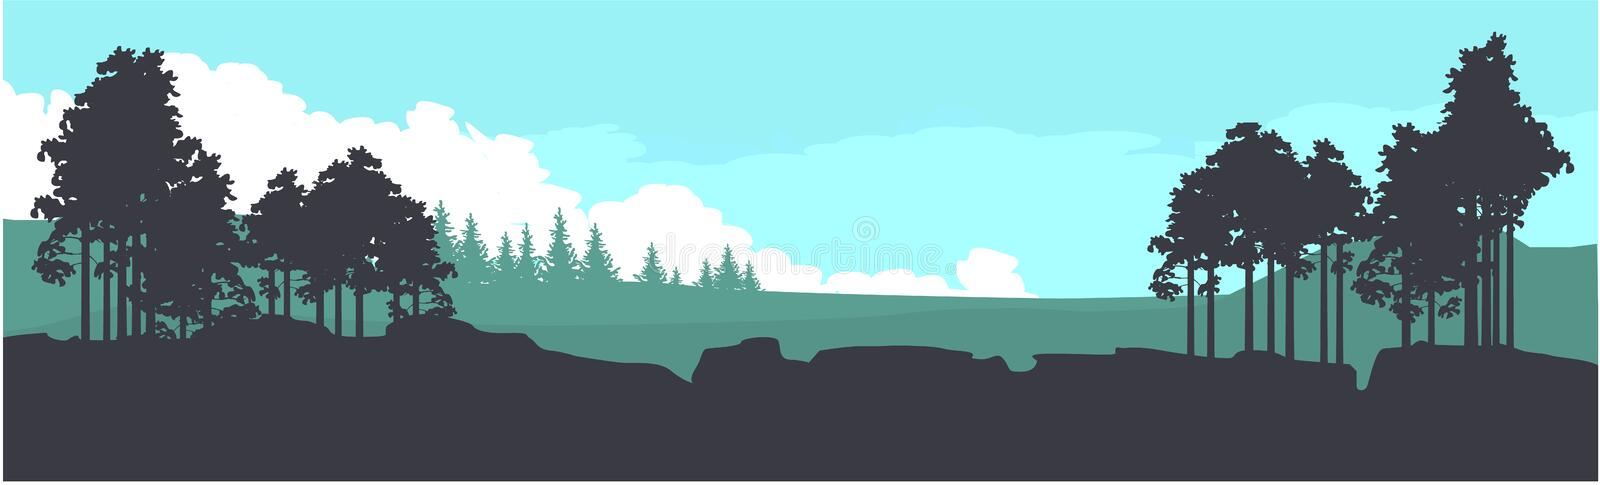 Horizontal mountain forest banner royalty free illustration